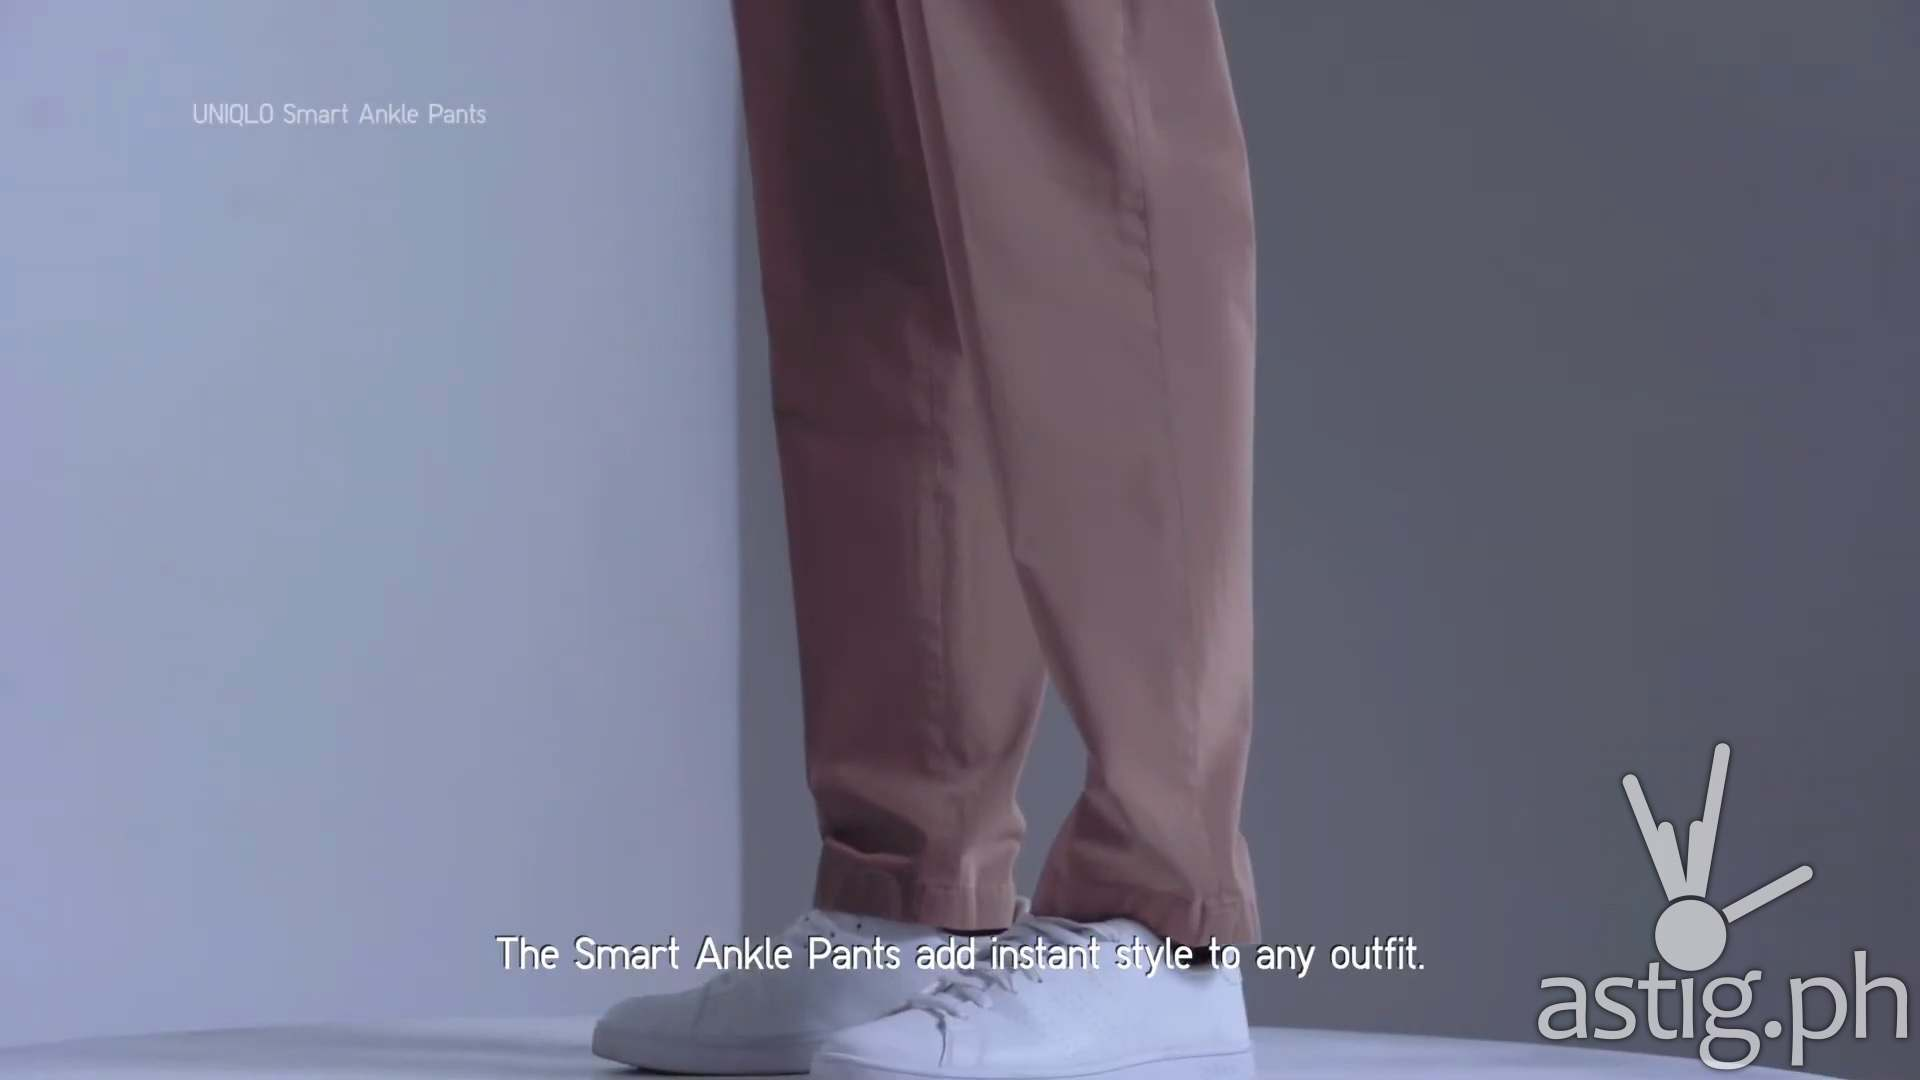 Smart ankle pants - UNIQLO fall winter collection 2020